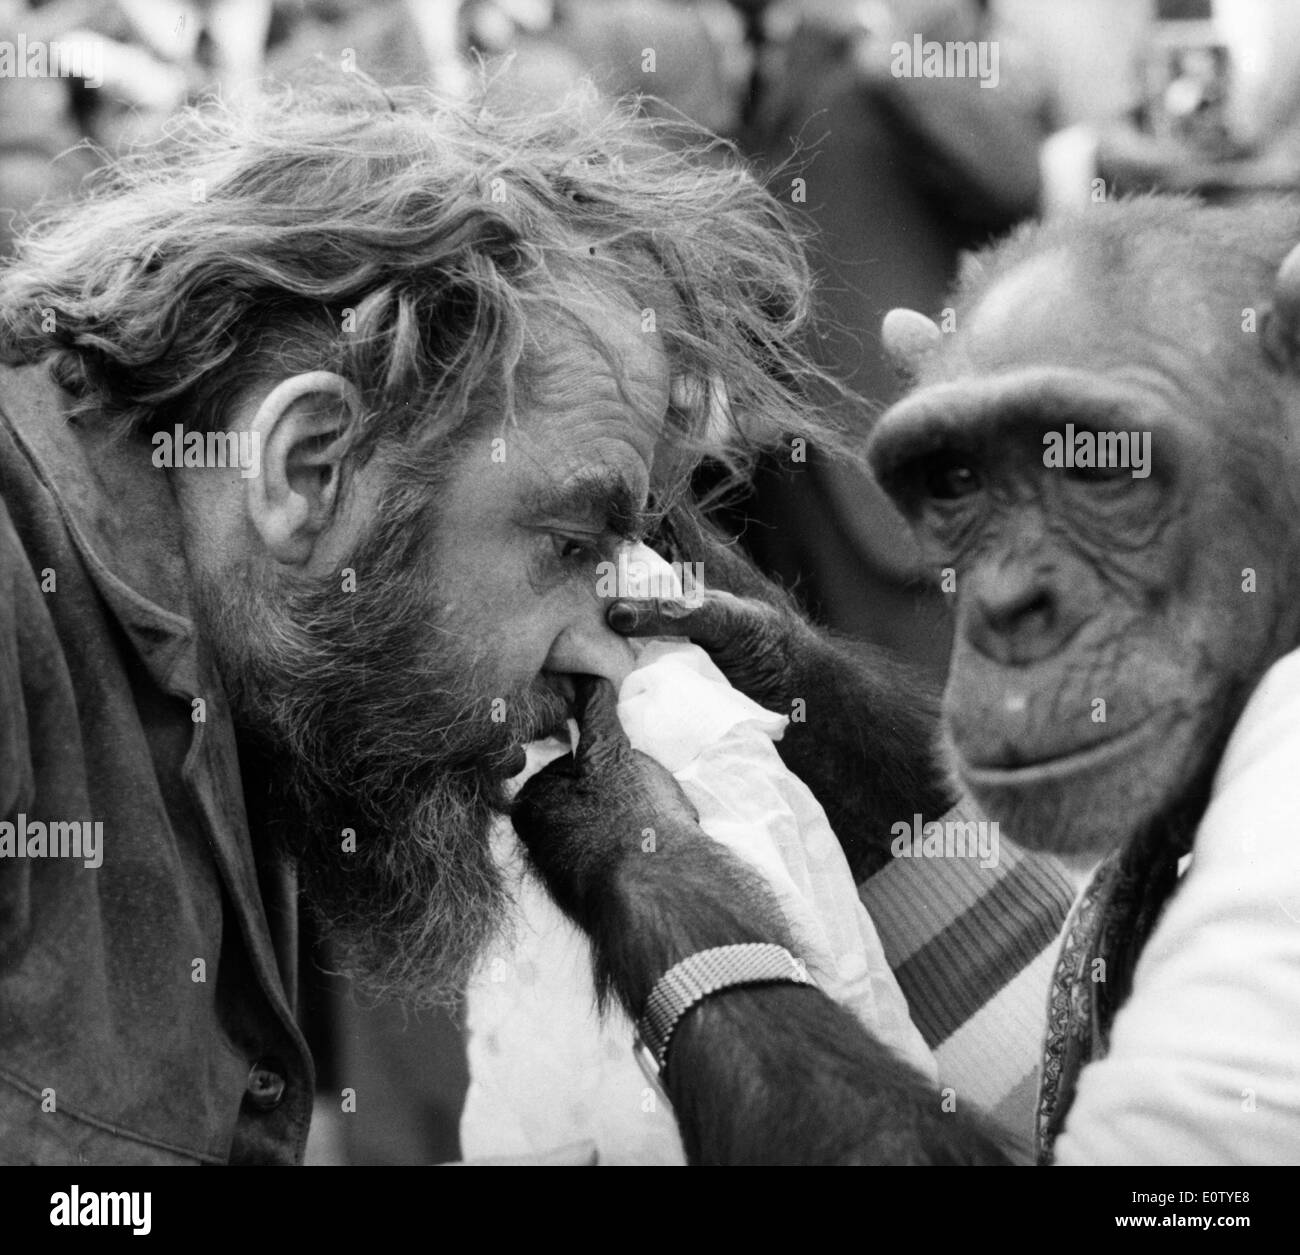 A chimpanzee picking Hugh Griffith's nose on set of a film - Stock Image